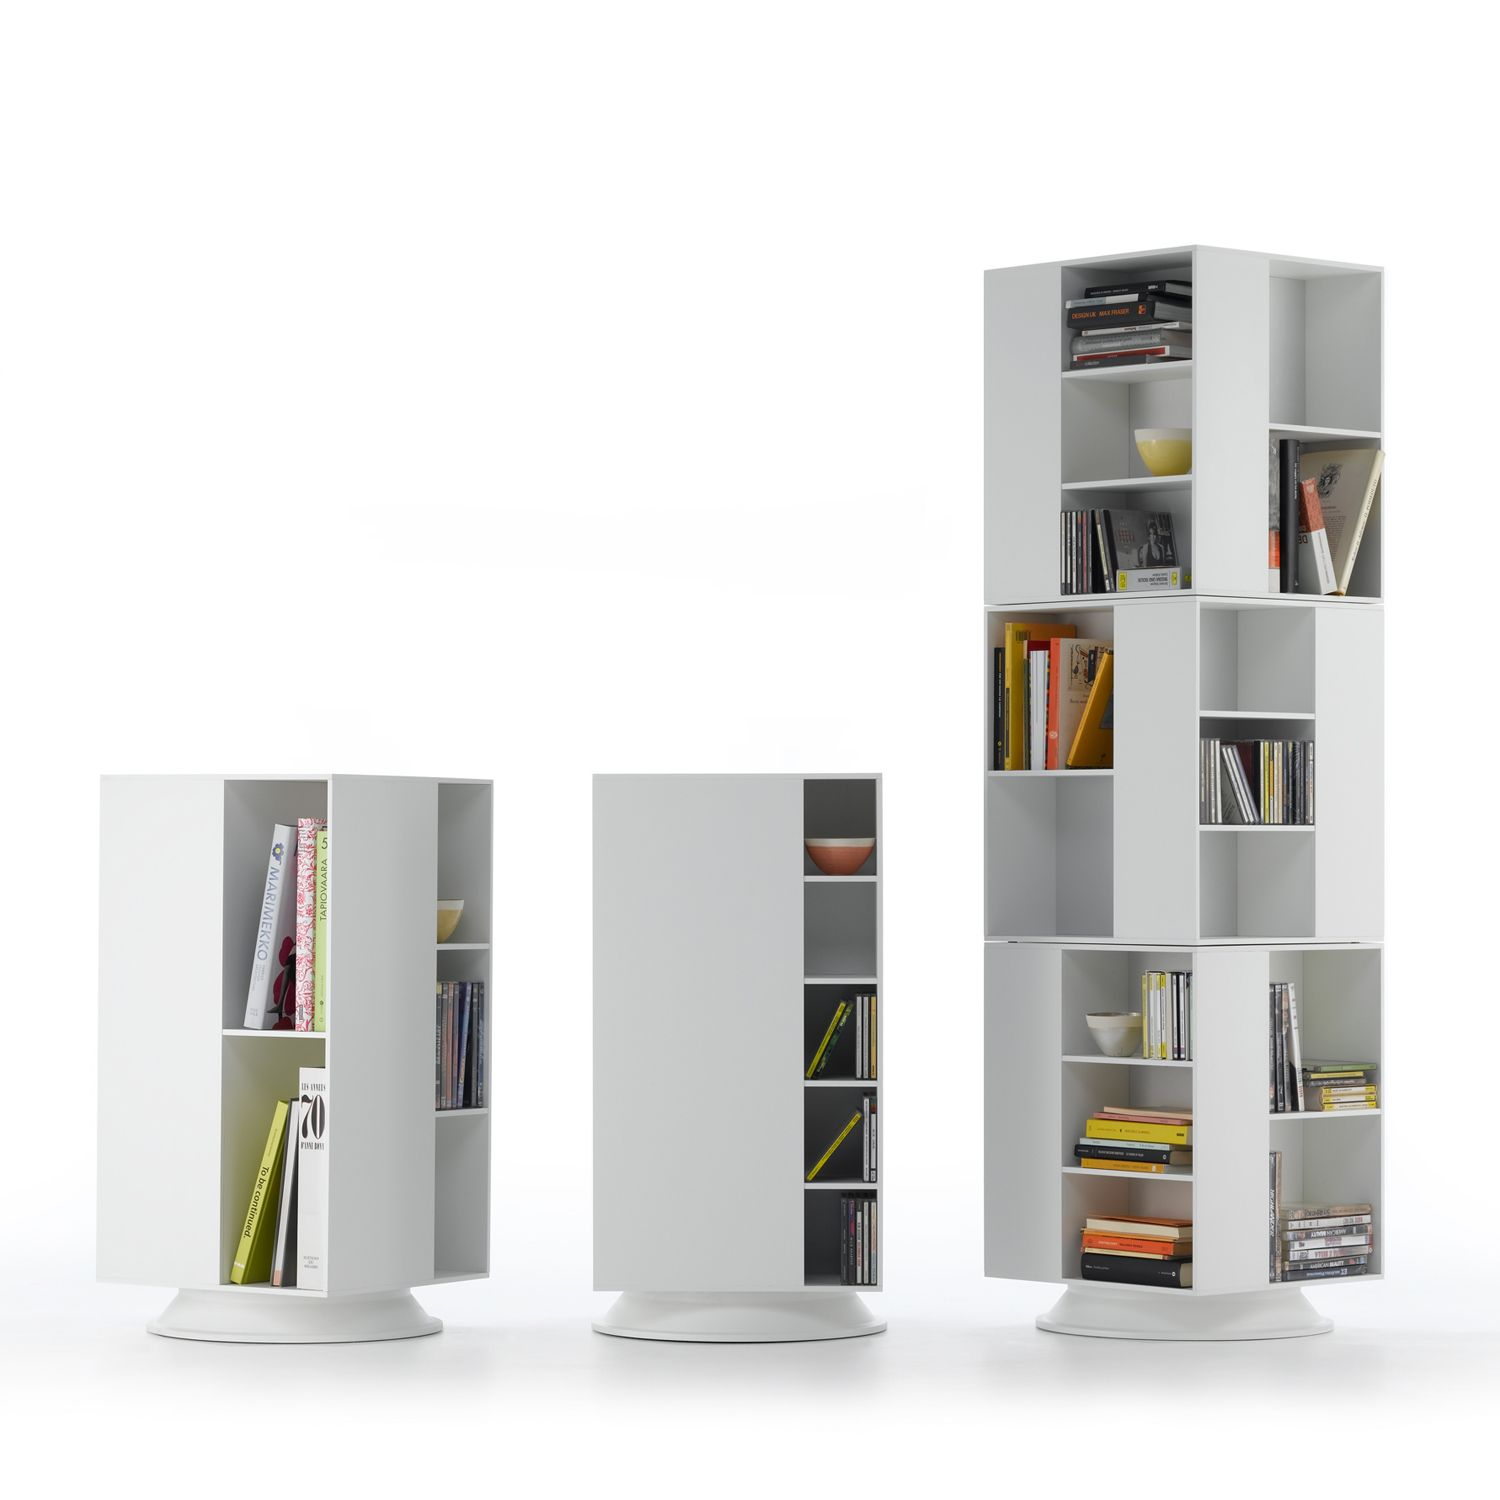 These James Irvine Box Storage units can stack on the swivel base creating various configurations in  sc 1 st  Pinterest & These James Irvine Box Storage units can stack on the swivel base ...